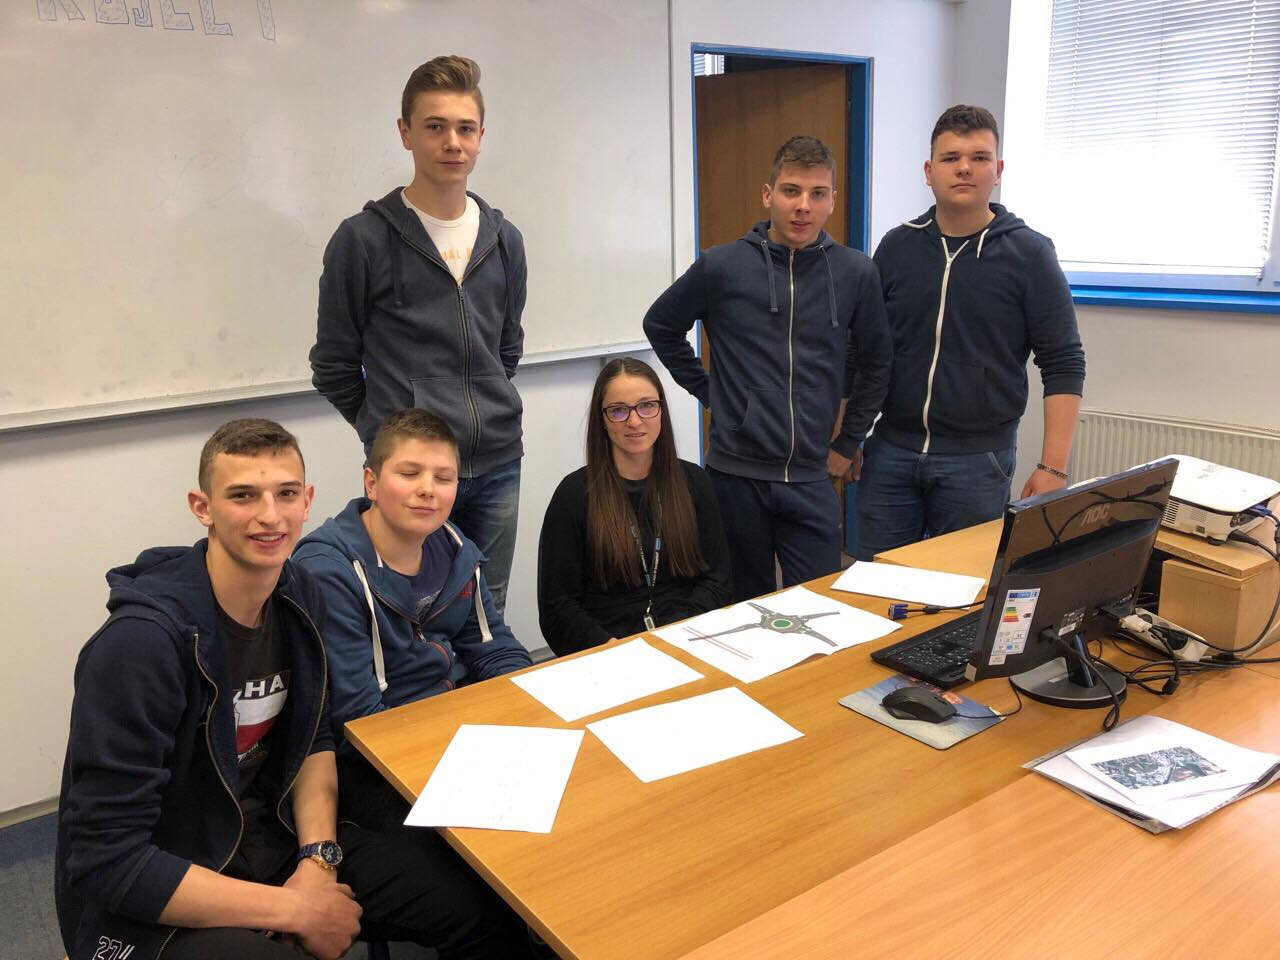 Teacher Maja Gregar with her team of students who worked on this project